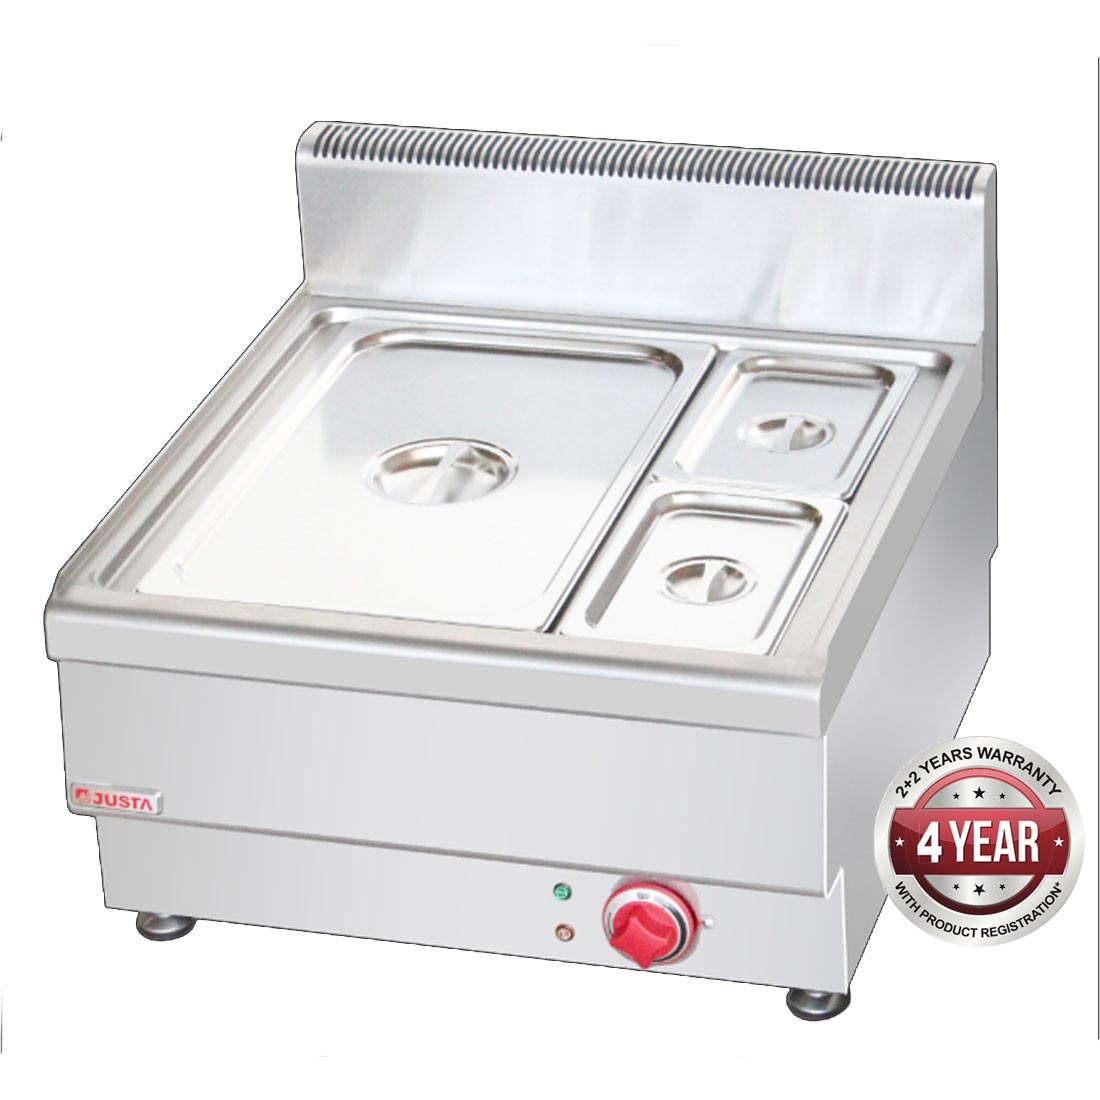 JUS-TY-2 Dry Bain Marie With 1 x 1/1 pan + 2 x ¼  GN Pan & Lid